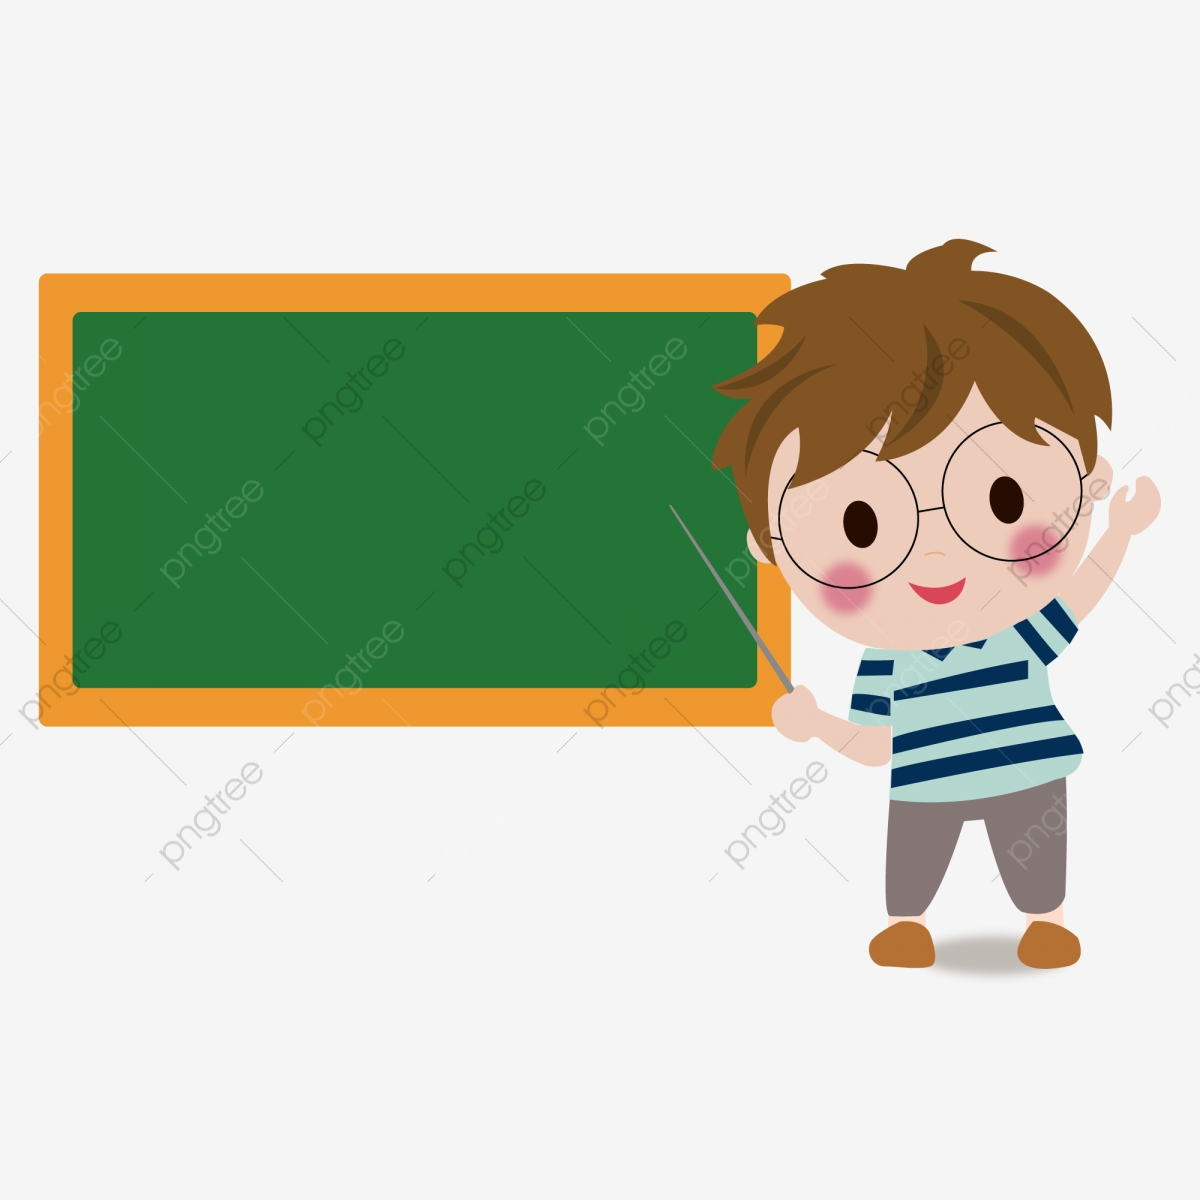 Student Blackboard Learn Class Student Clipart Class Education Png And Vector With Transparent Background For Free Download